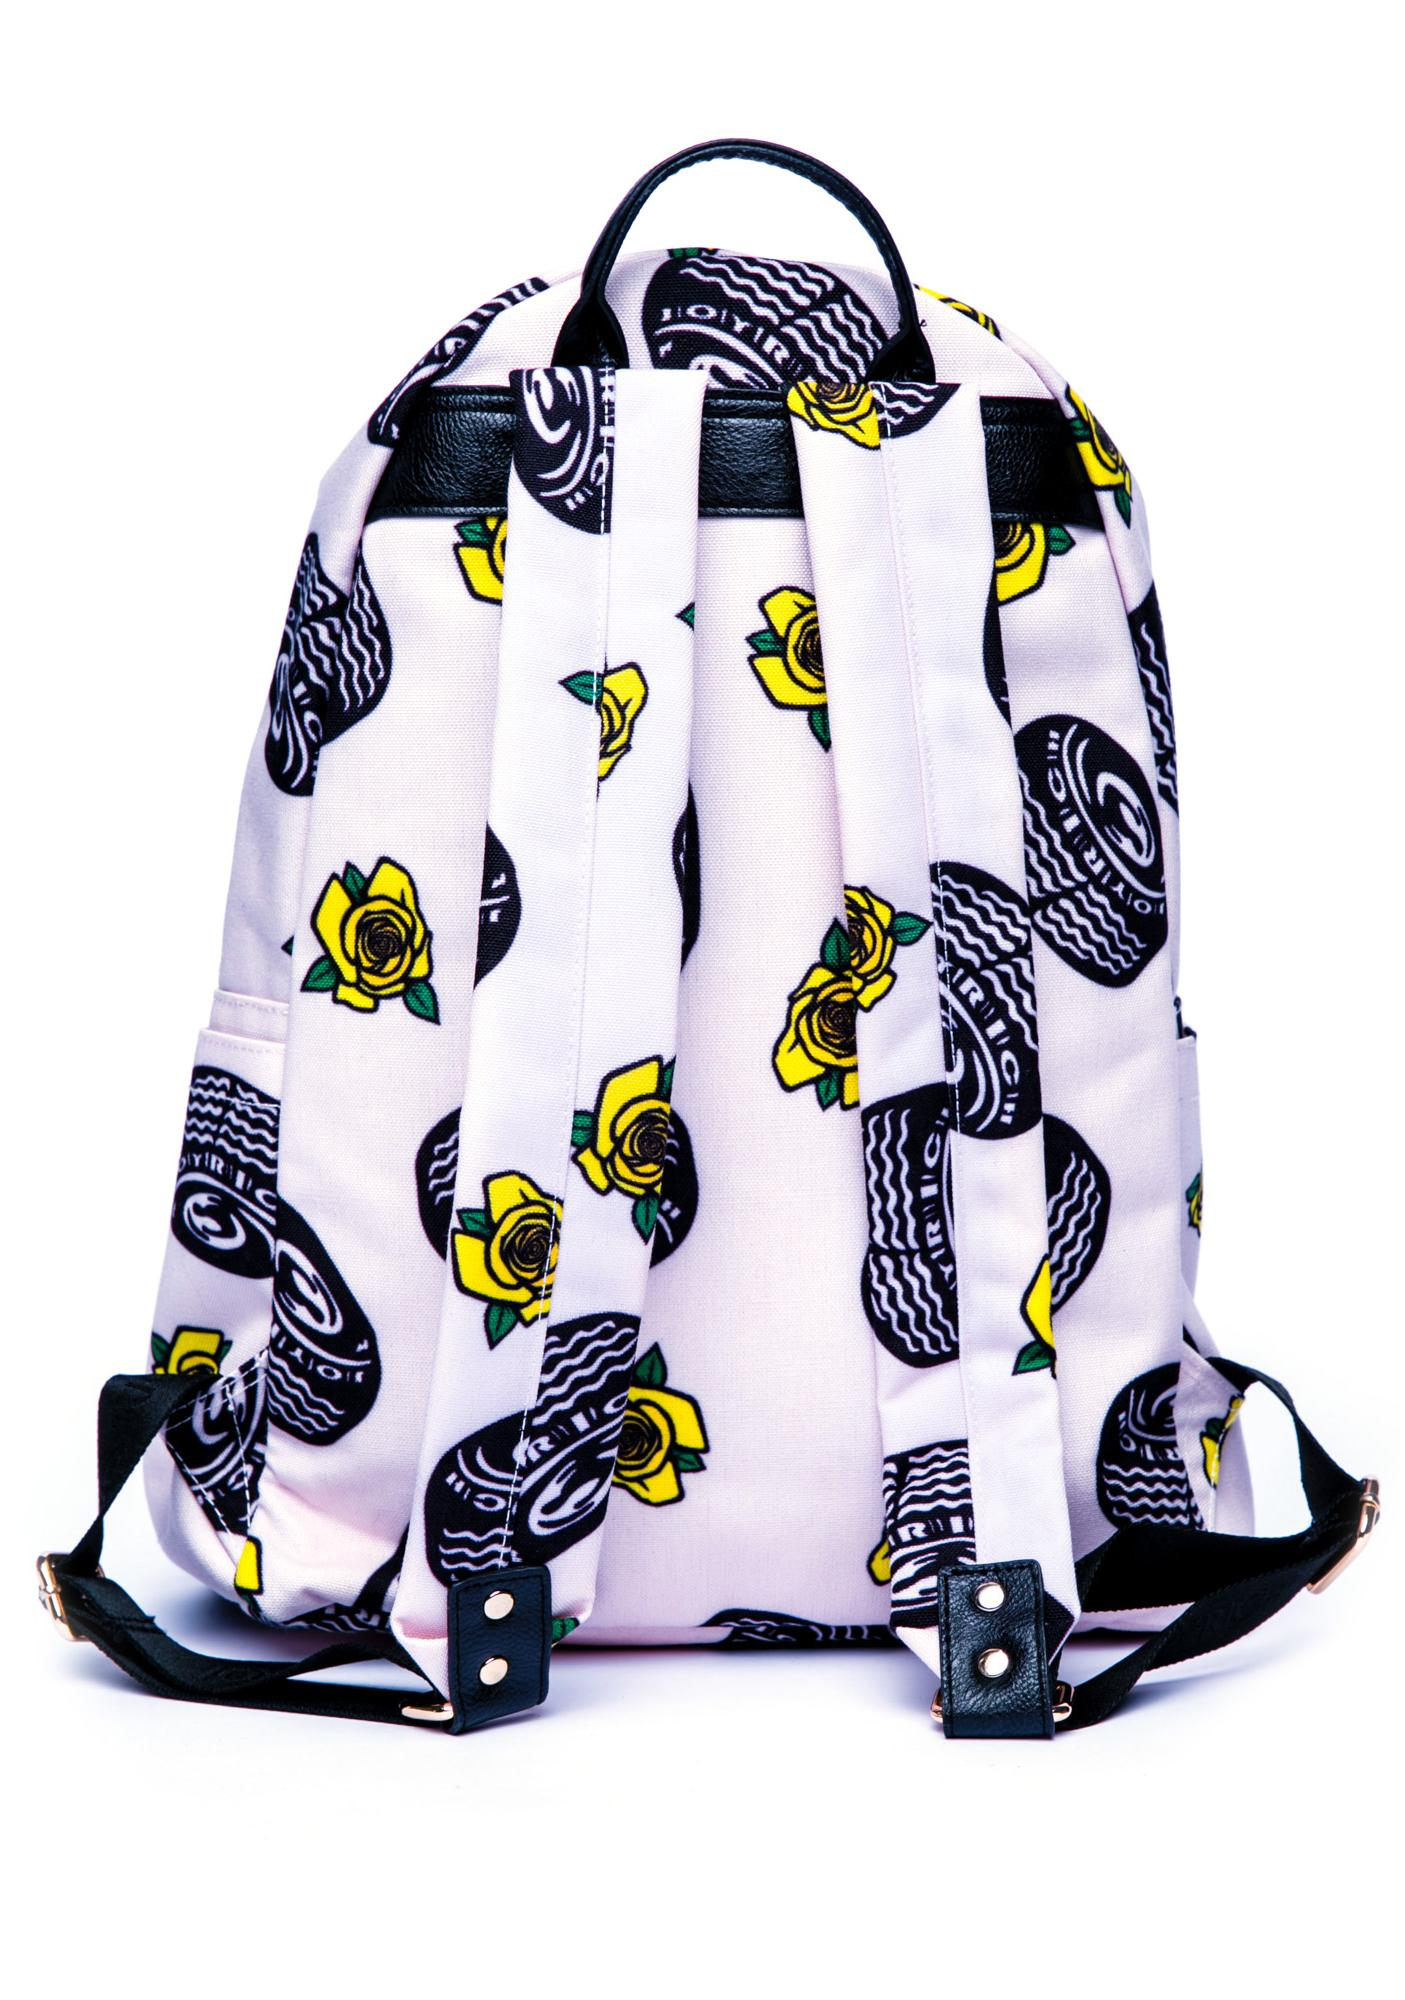 Joyrich Tire Parade Backpack